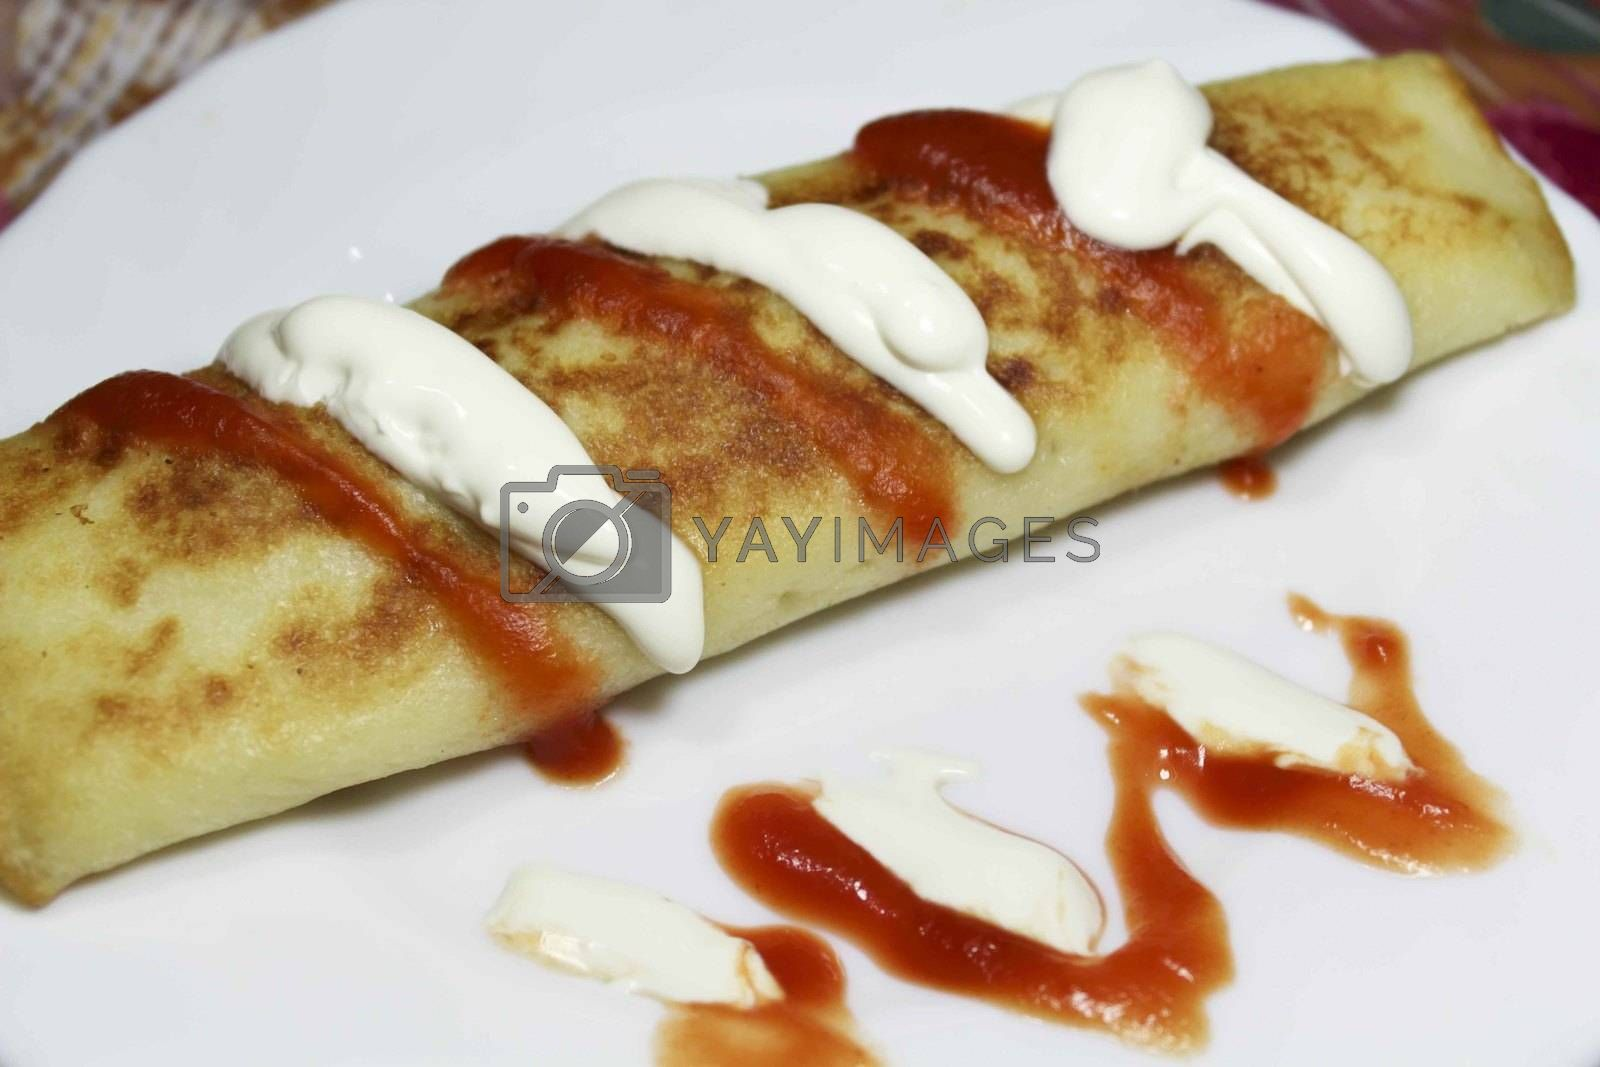 Royalty free image of Crepes by openas